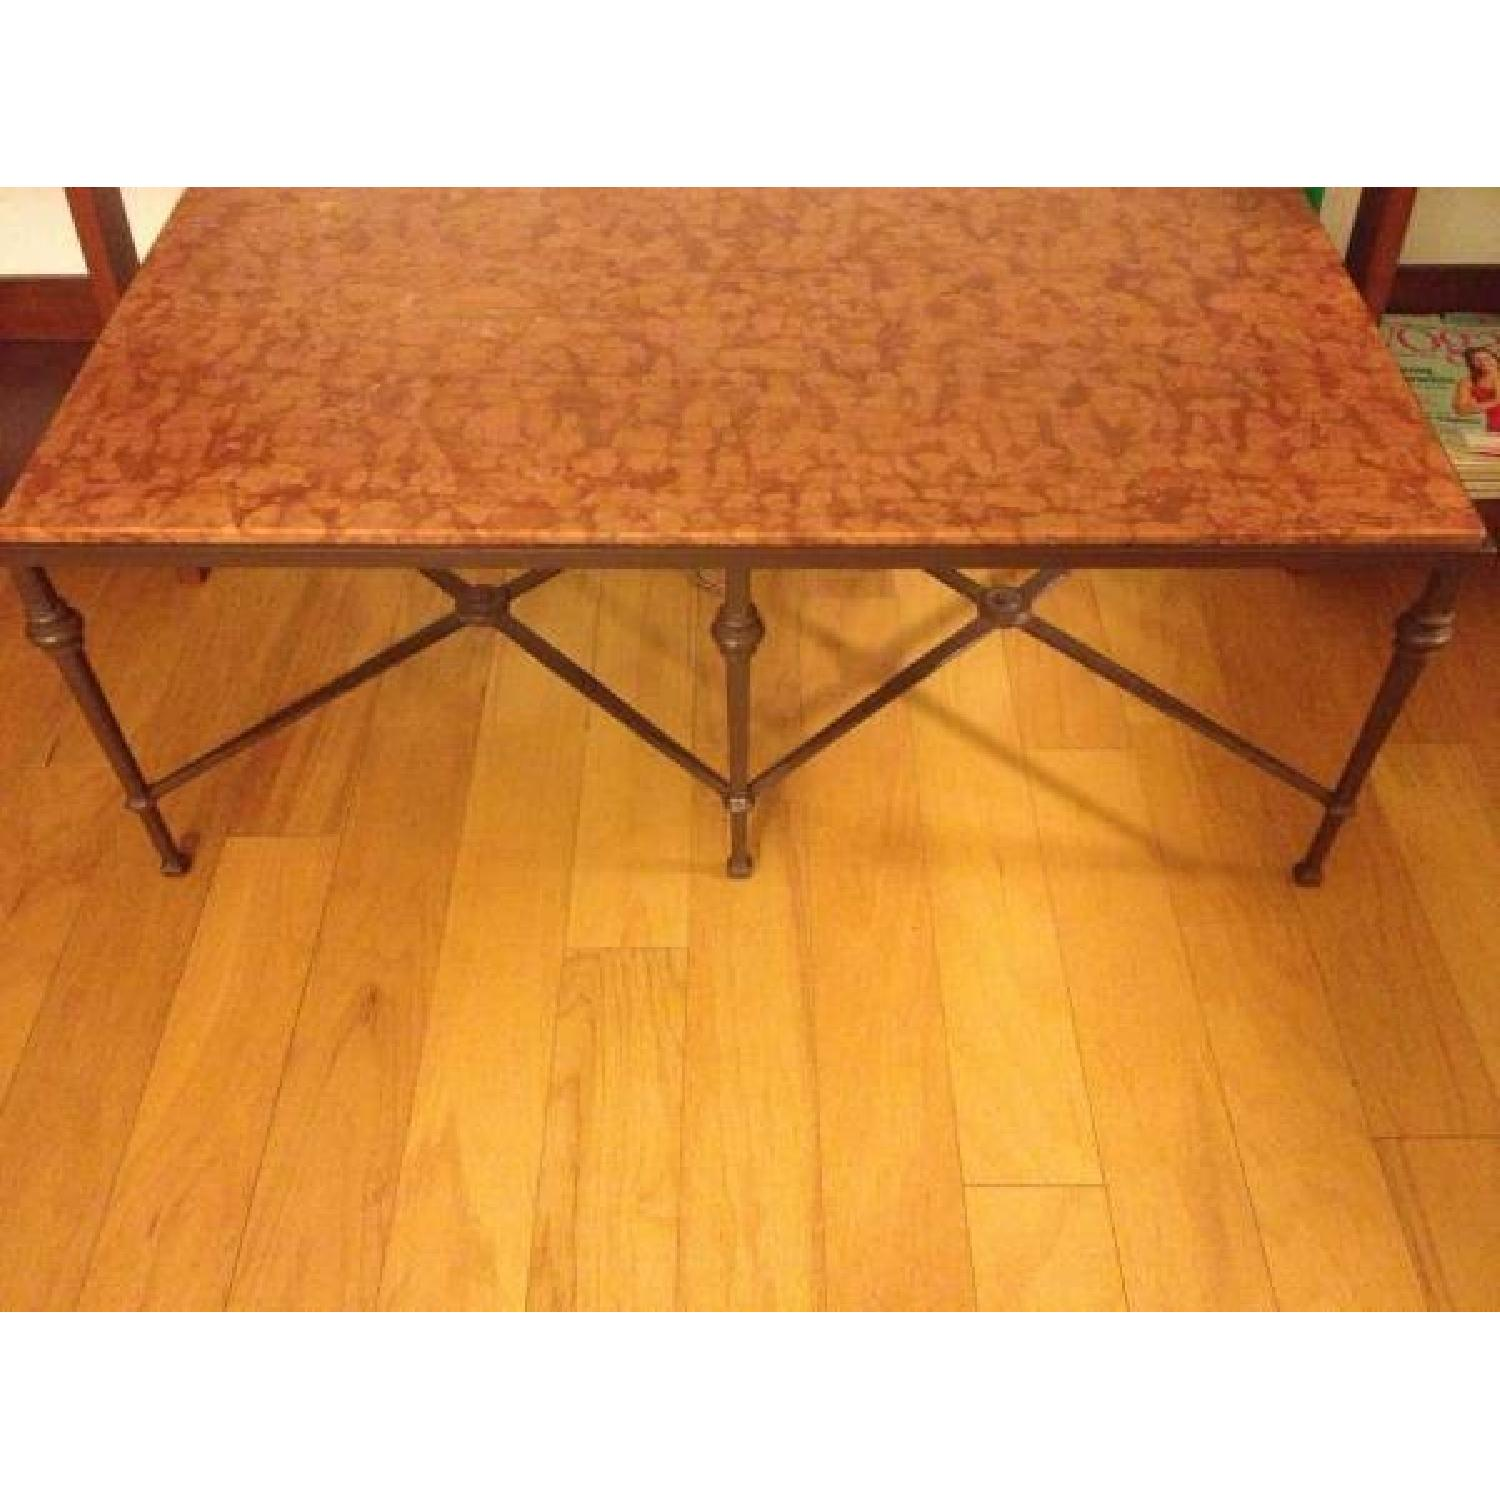 Wrought Iron Marble Coffee Table - image-2